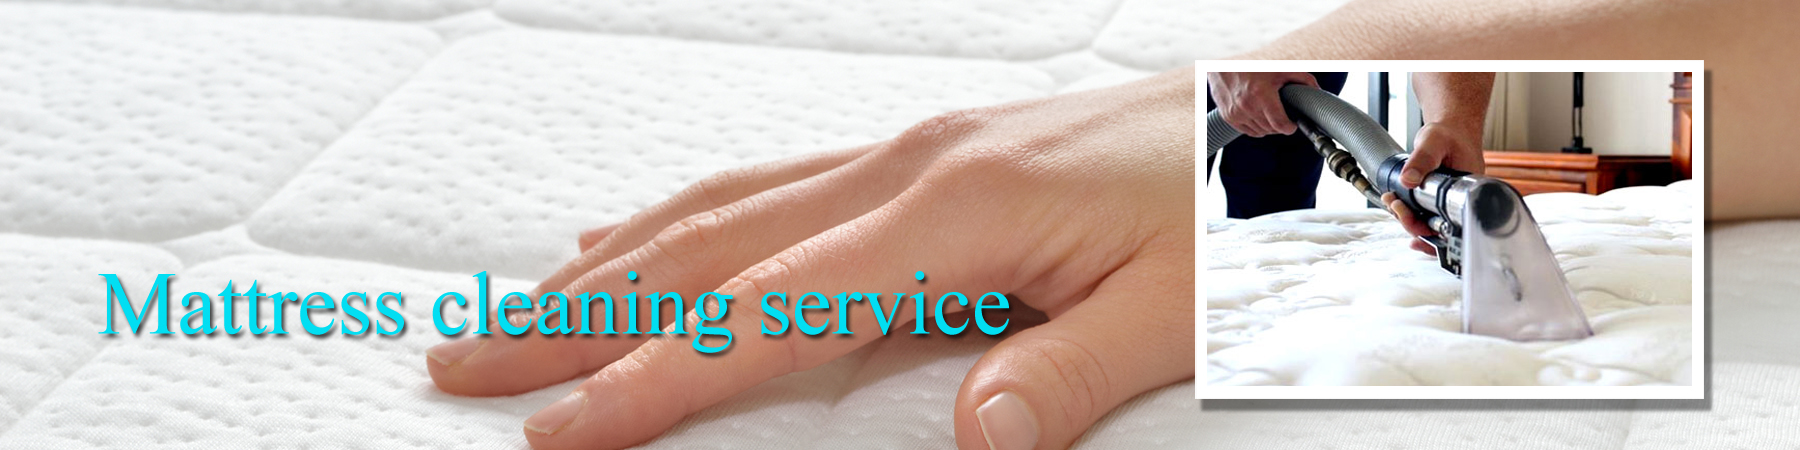 JR Mattress Cleaning Newnham J R Cleaning